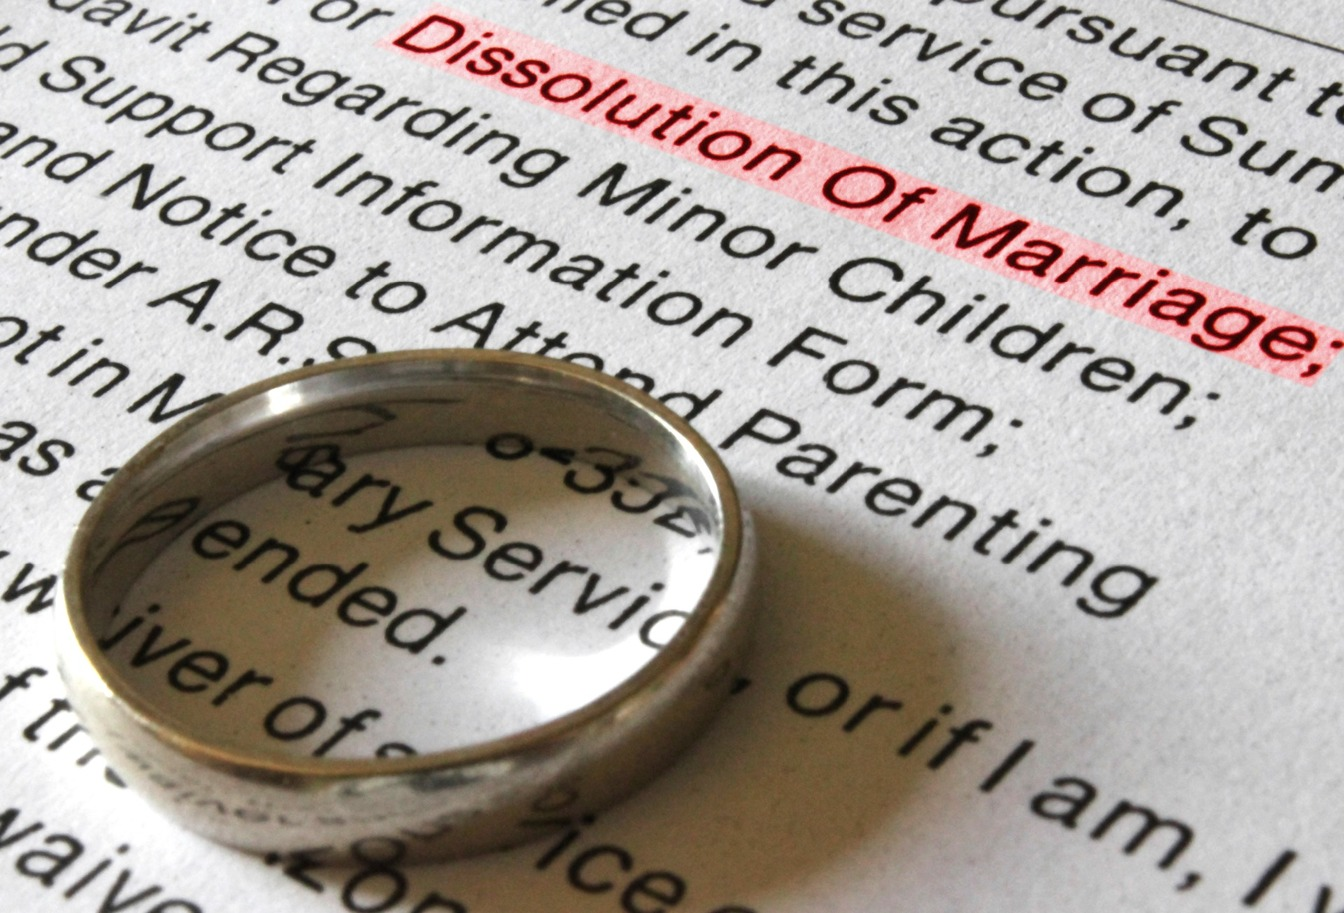 Gold wedding ring placed on divorce paperwork with Dissolution of Marriage highlighted